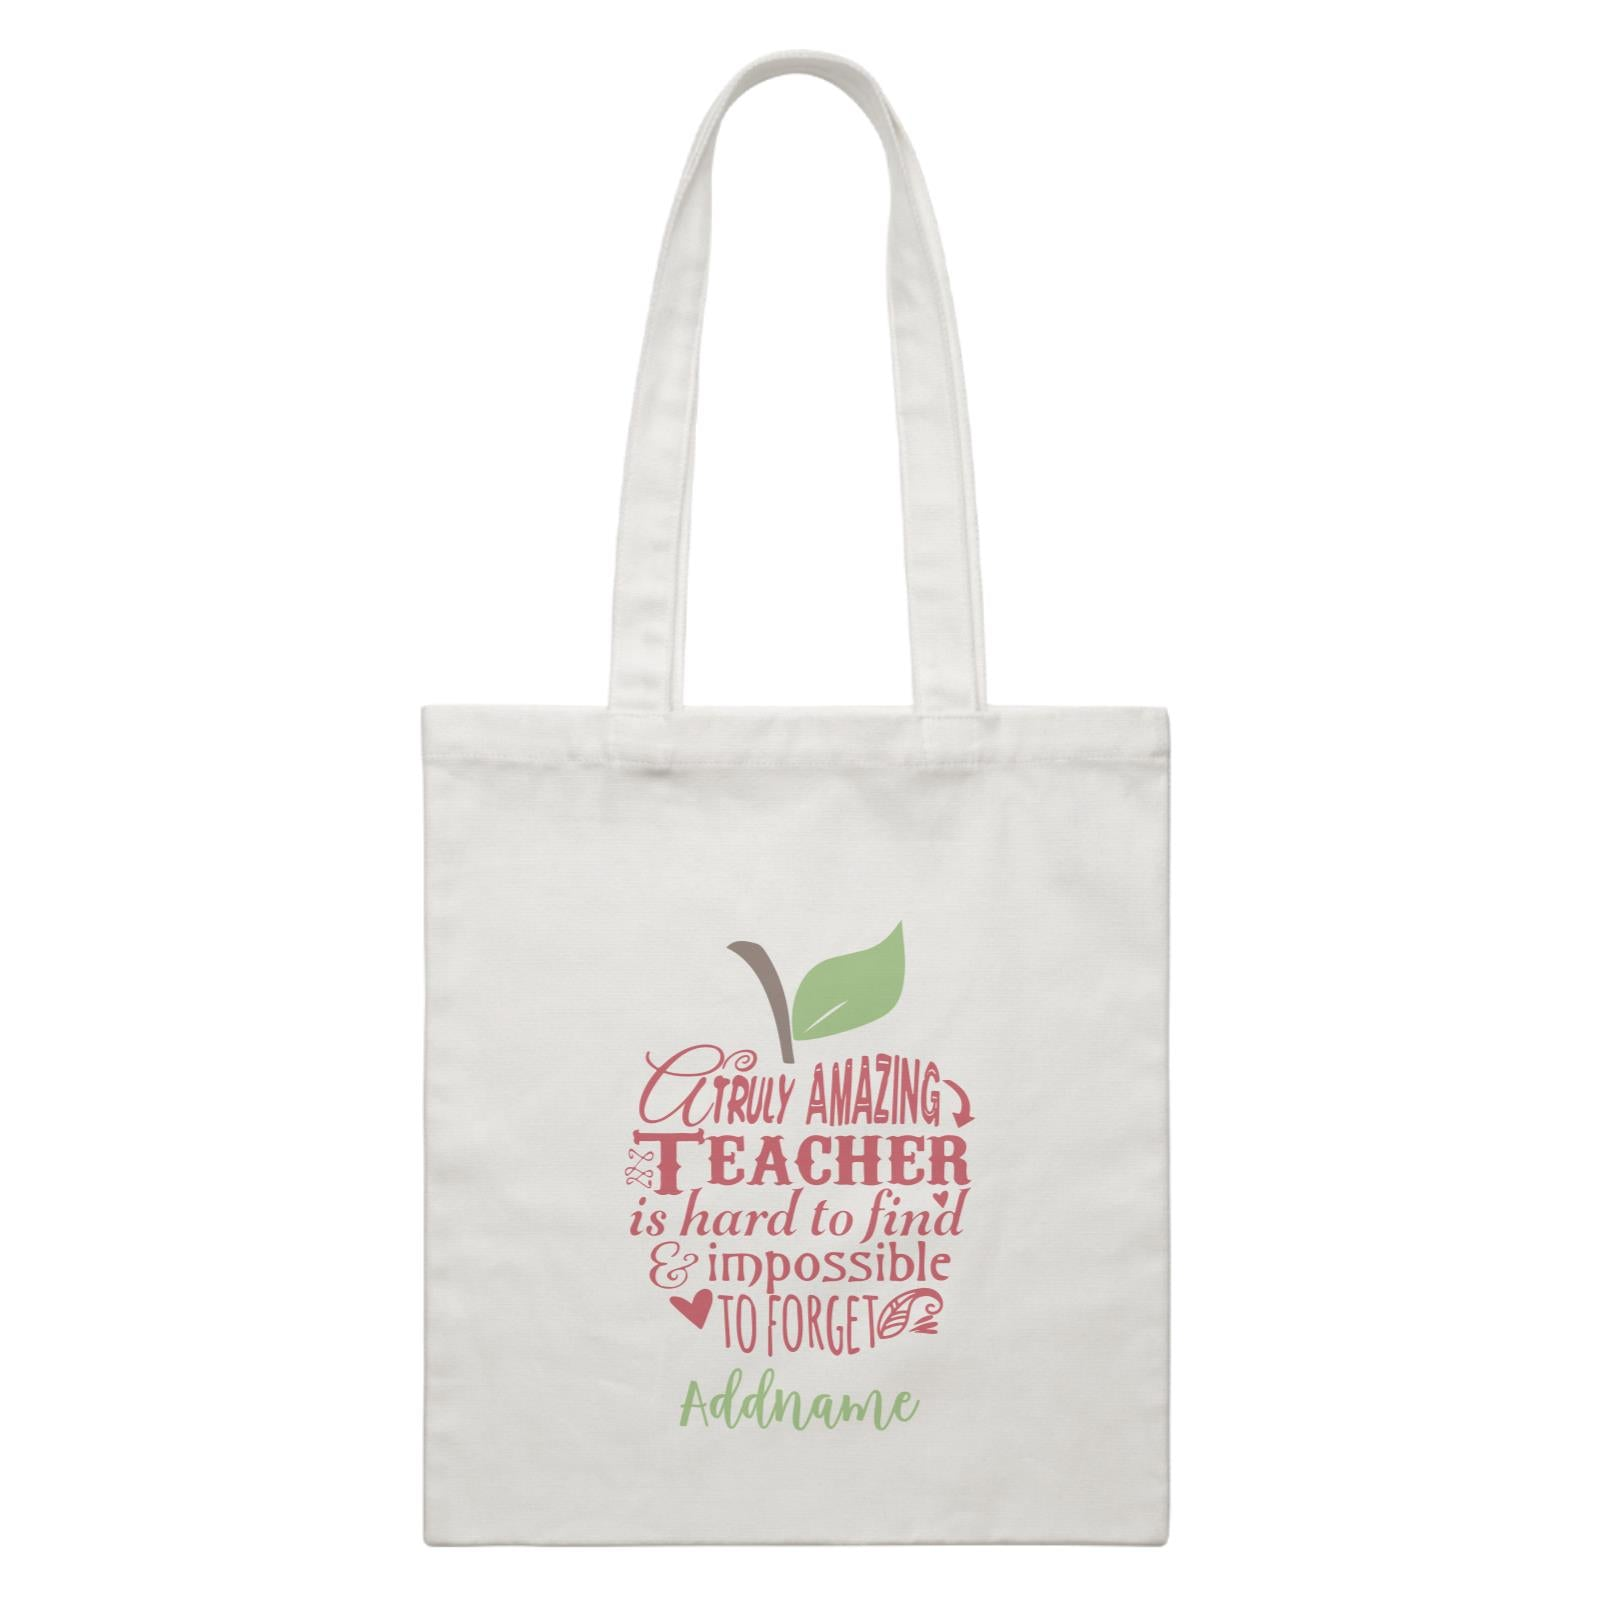 Teacher Apple Truly Amazing Teacher is Had To Find & Impossible To Forget Addname White Canvas Bag